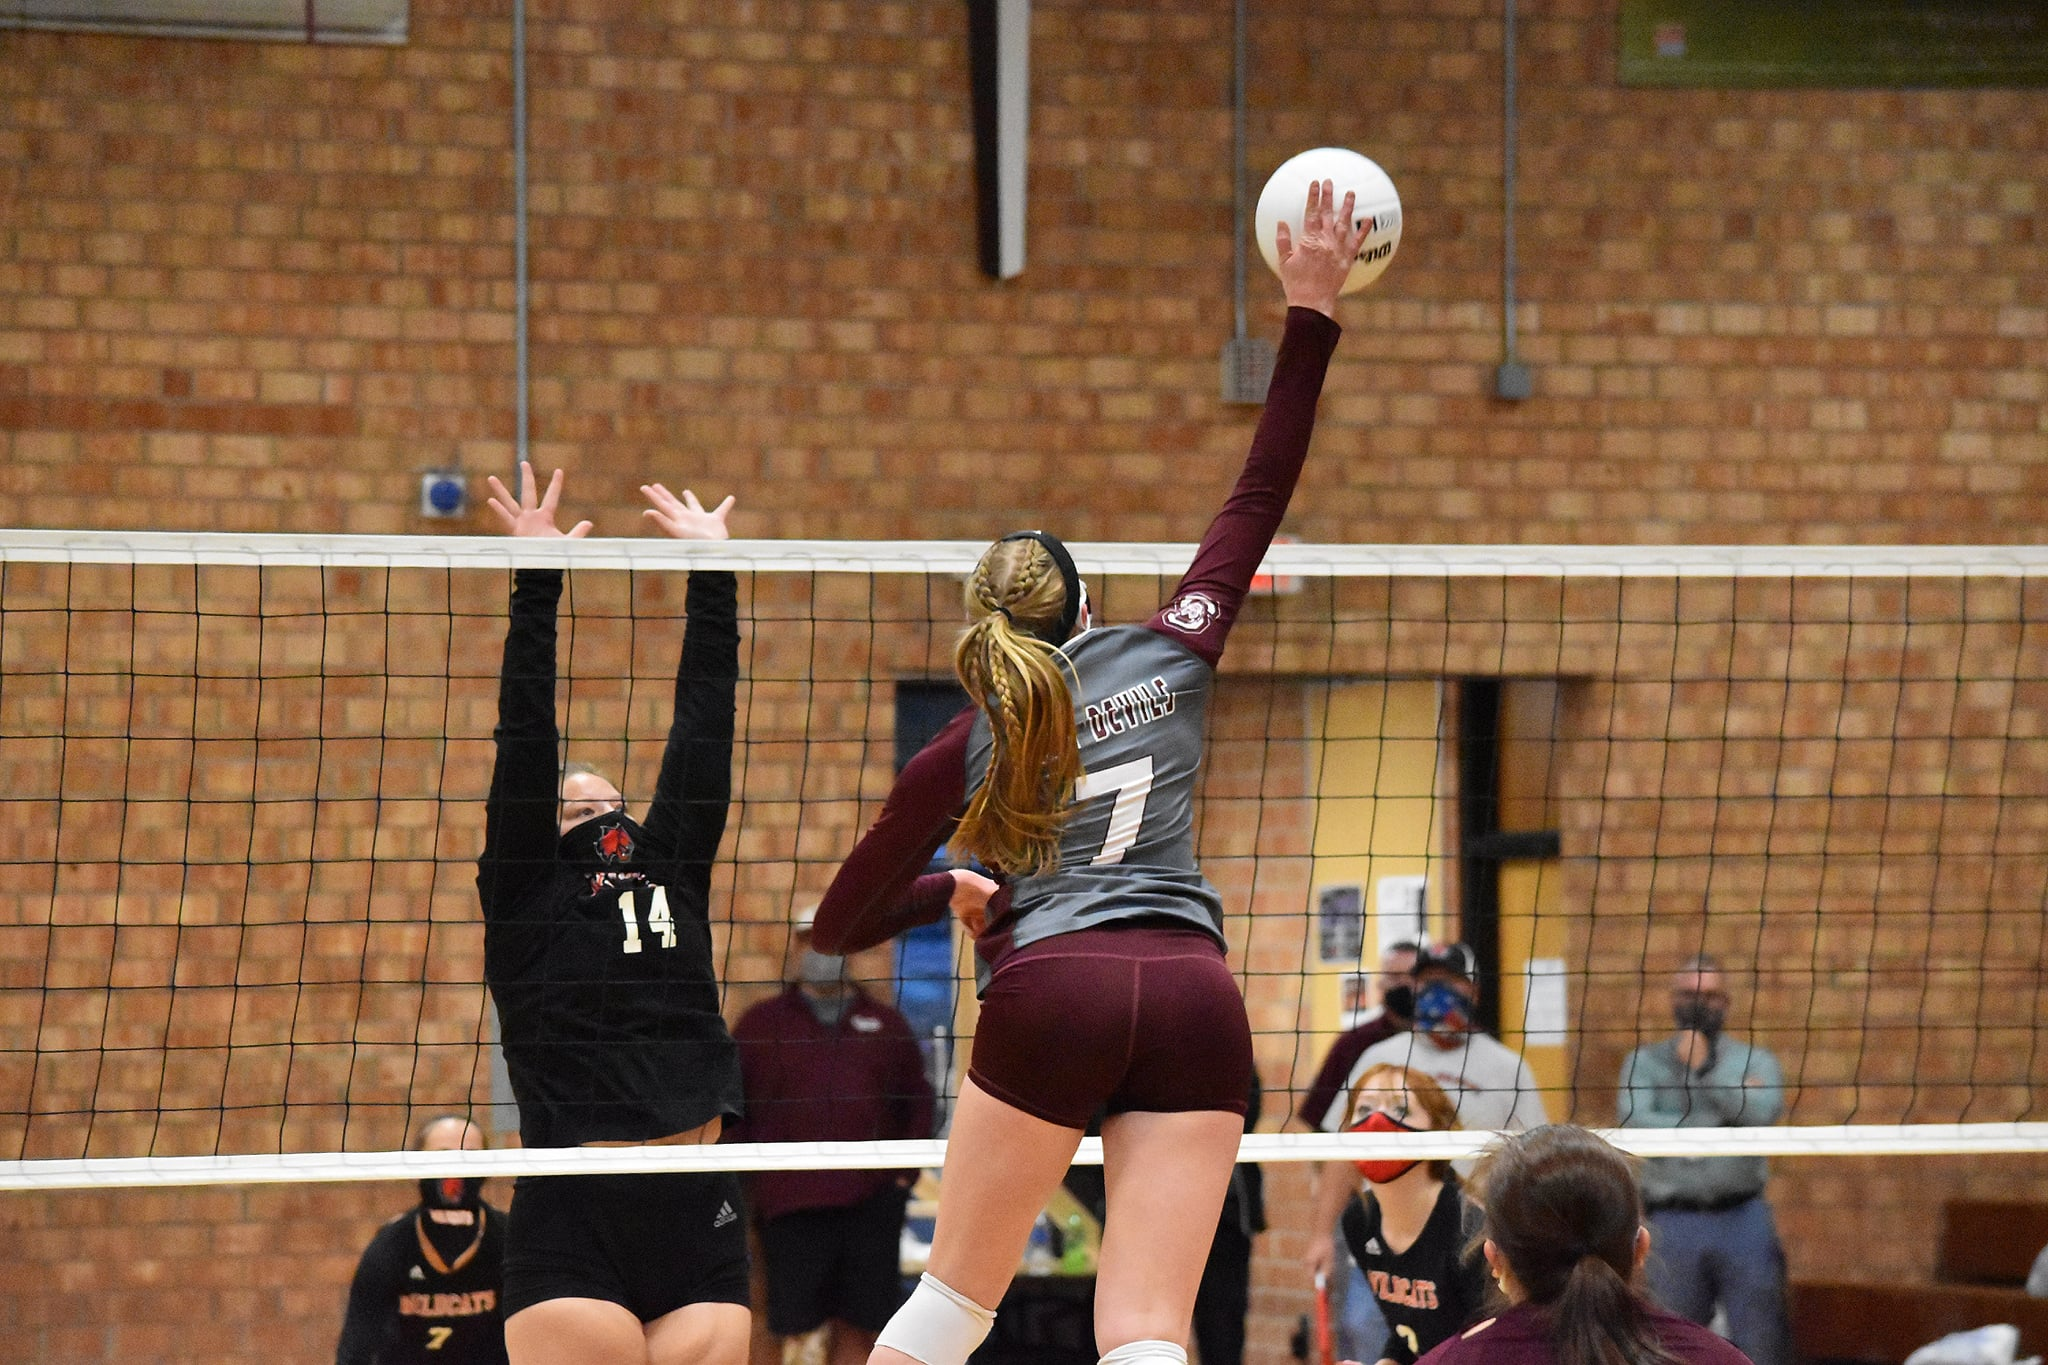 Lady Devils Fall in Final Volleyball Match